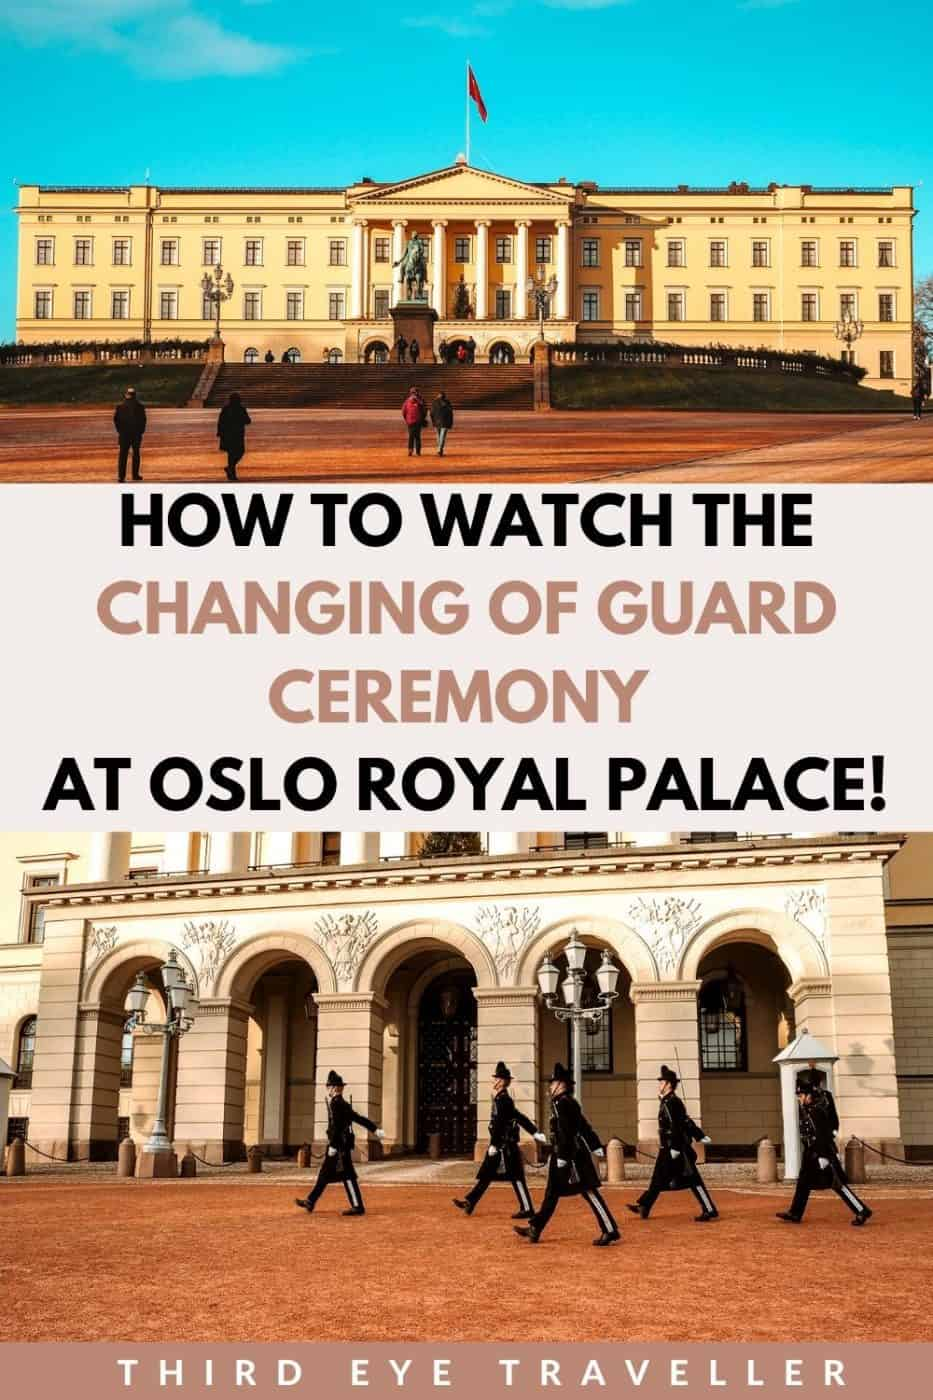 Oslo Royal Palace Changing of the Guard Ceremony